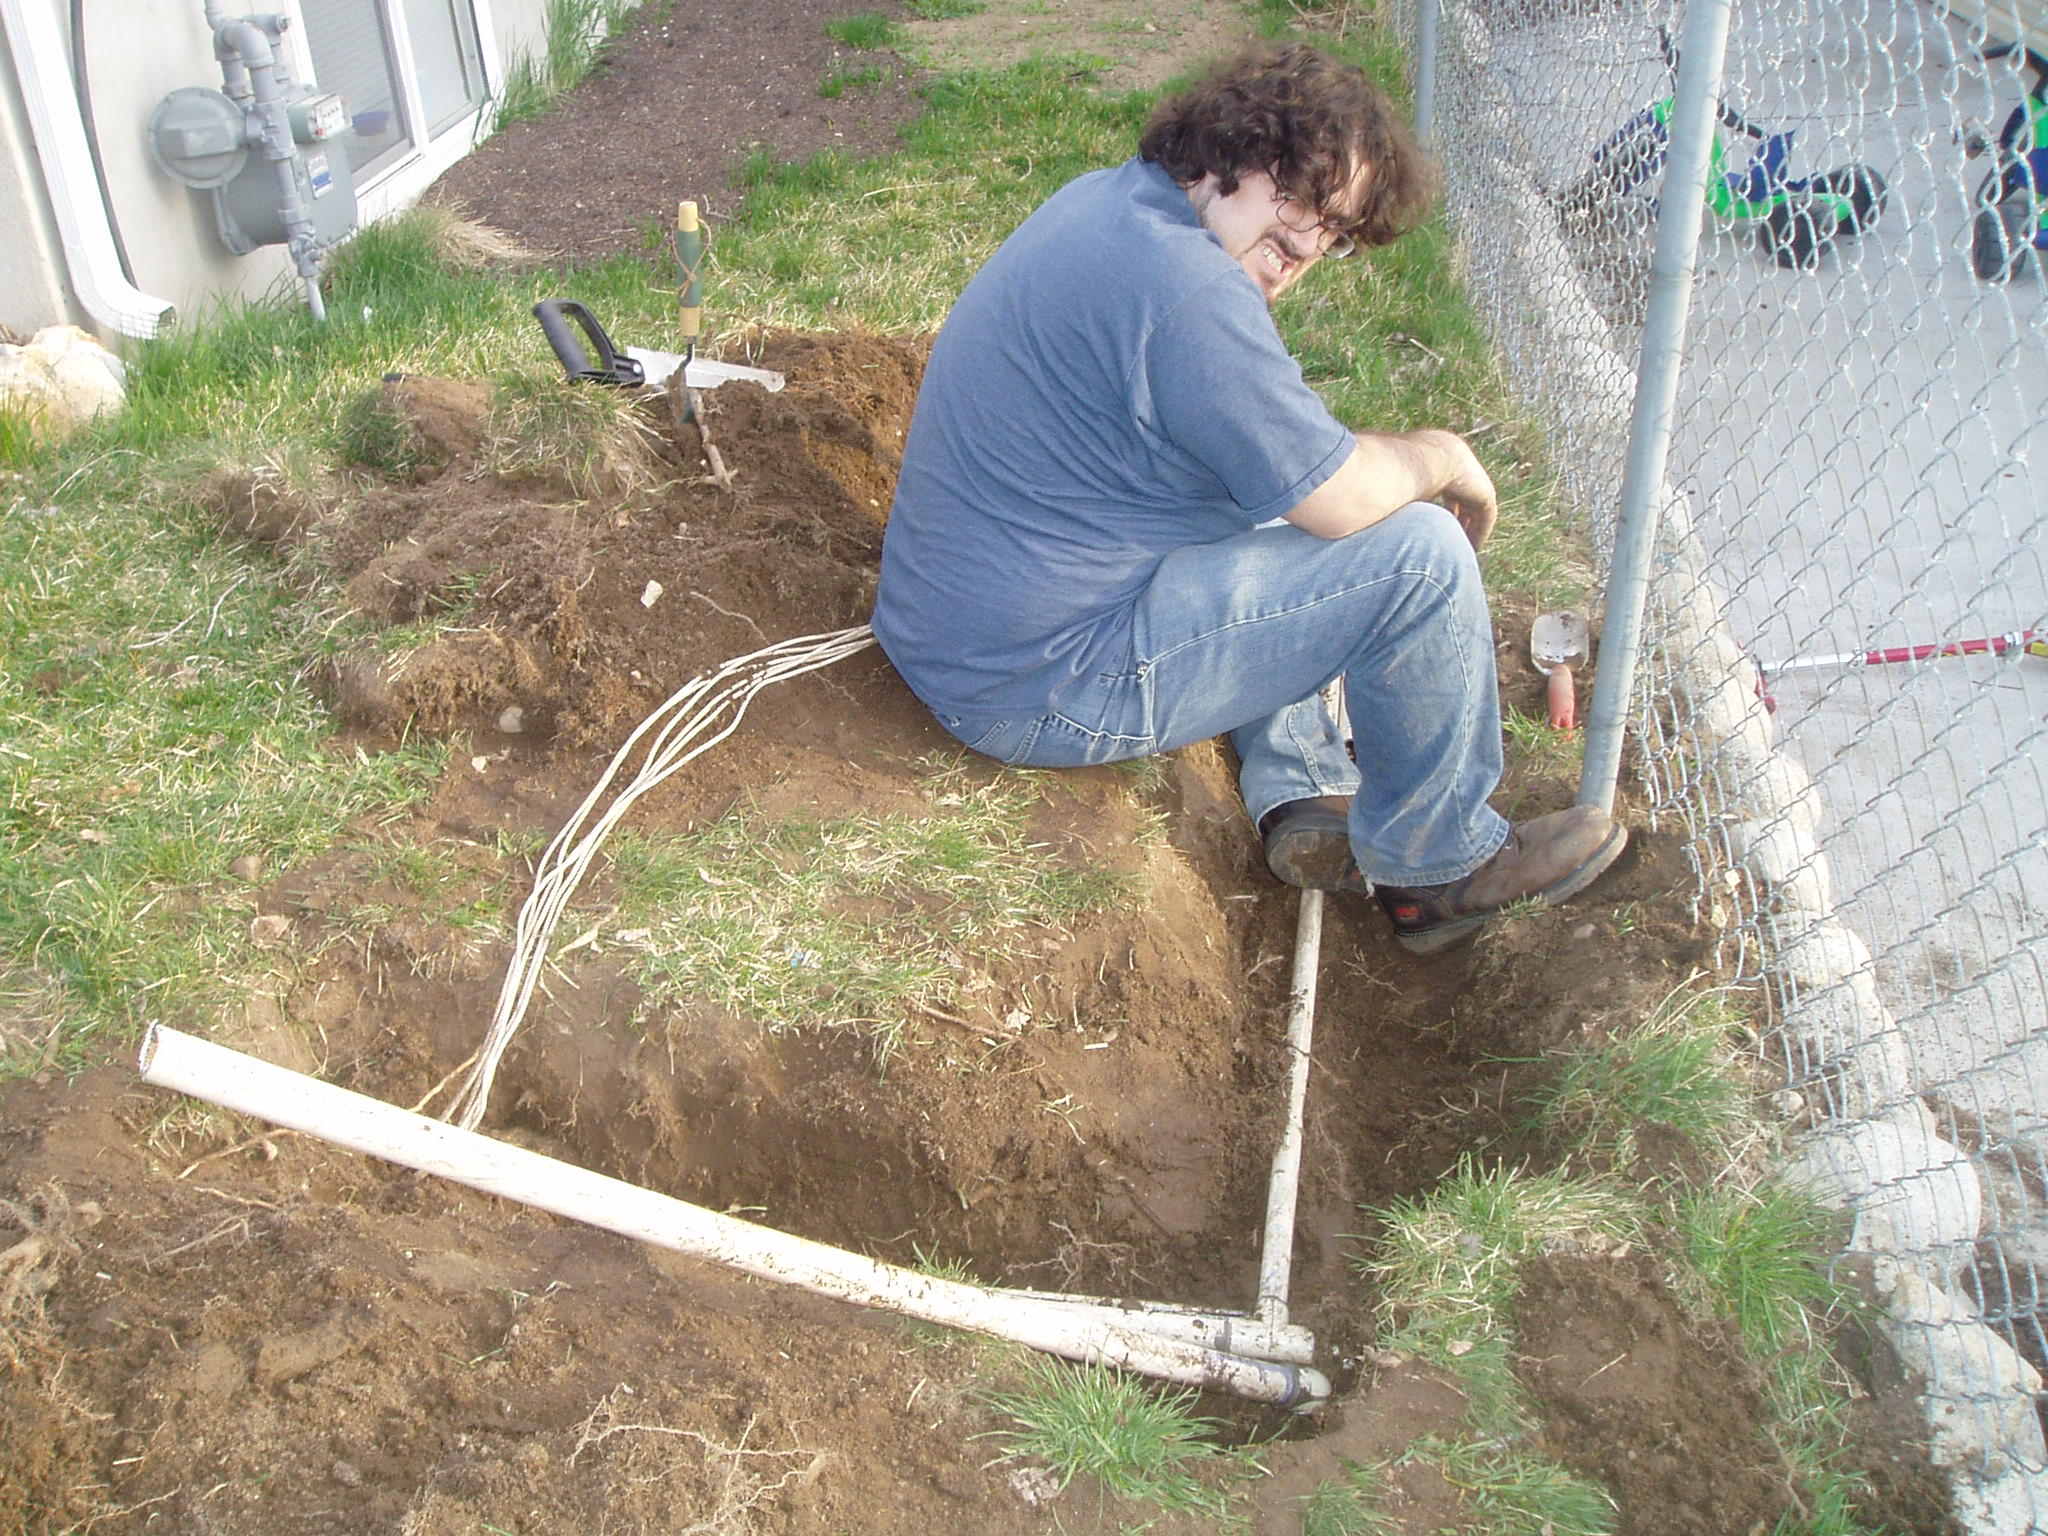 Yep, that's me working on the busted sprinkler line.